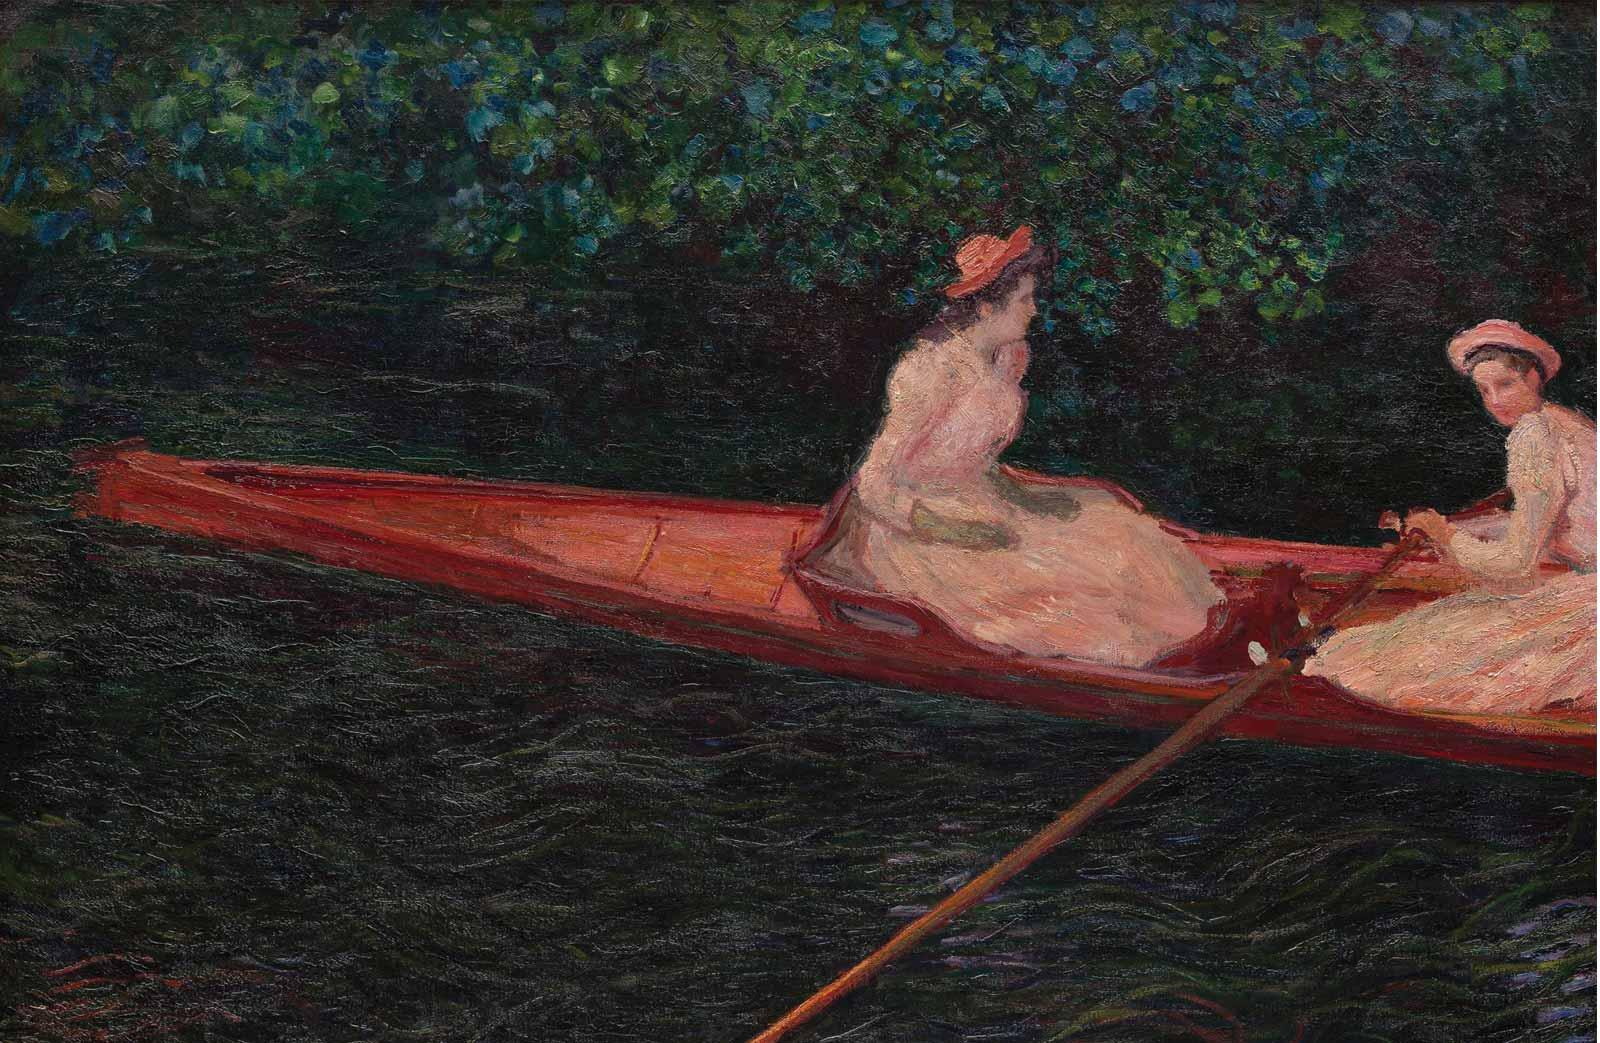 Claude Monet, The Canoe on the Epte, about 1890.